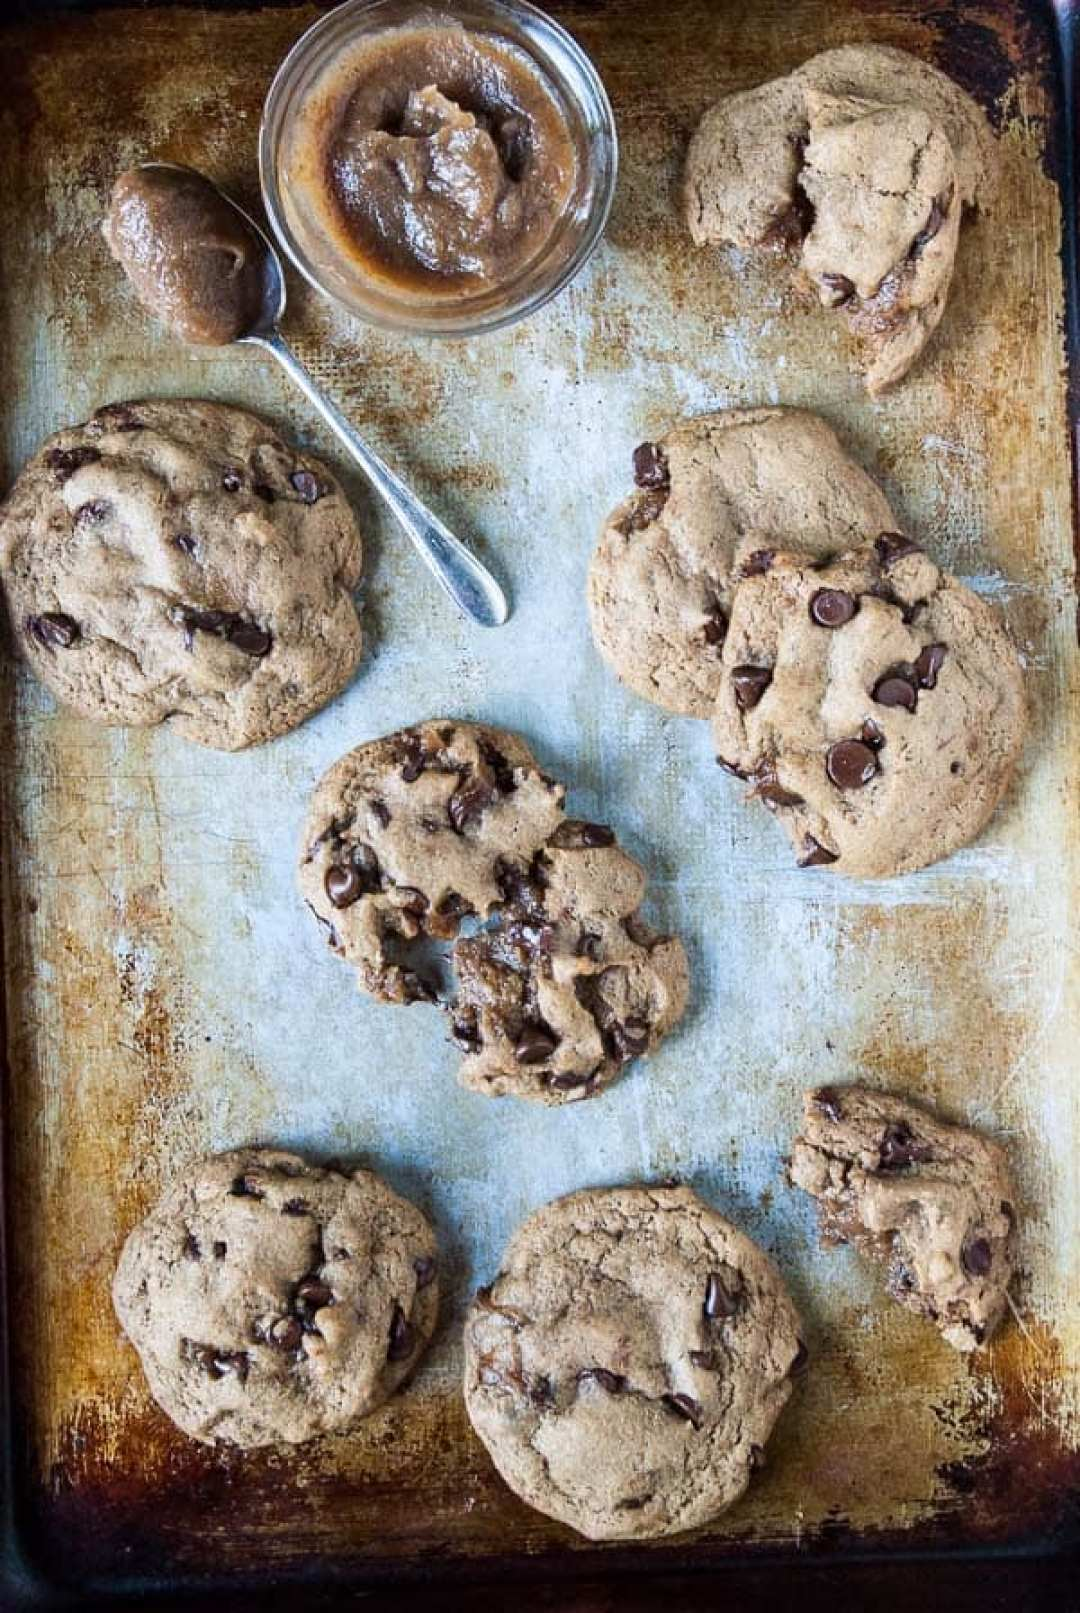 Vegan caramel chocolate chip cookies get stuffed with a date vegan caramel center and plenty of chocolate. Ready in under an hour and easy as pie!